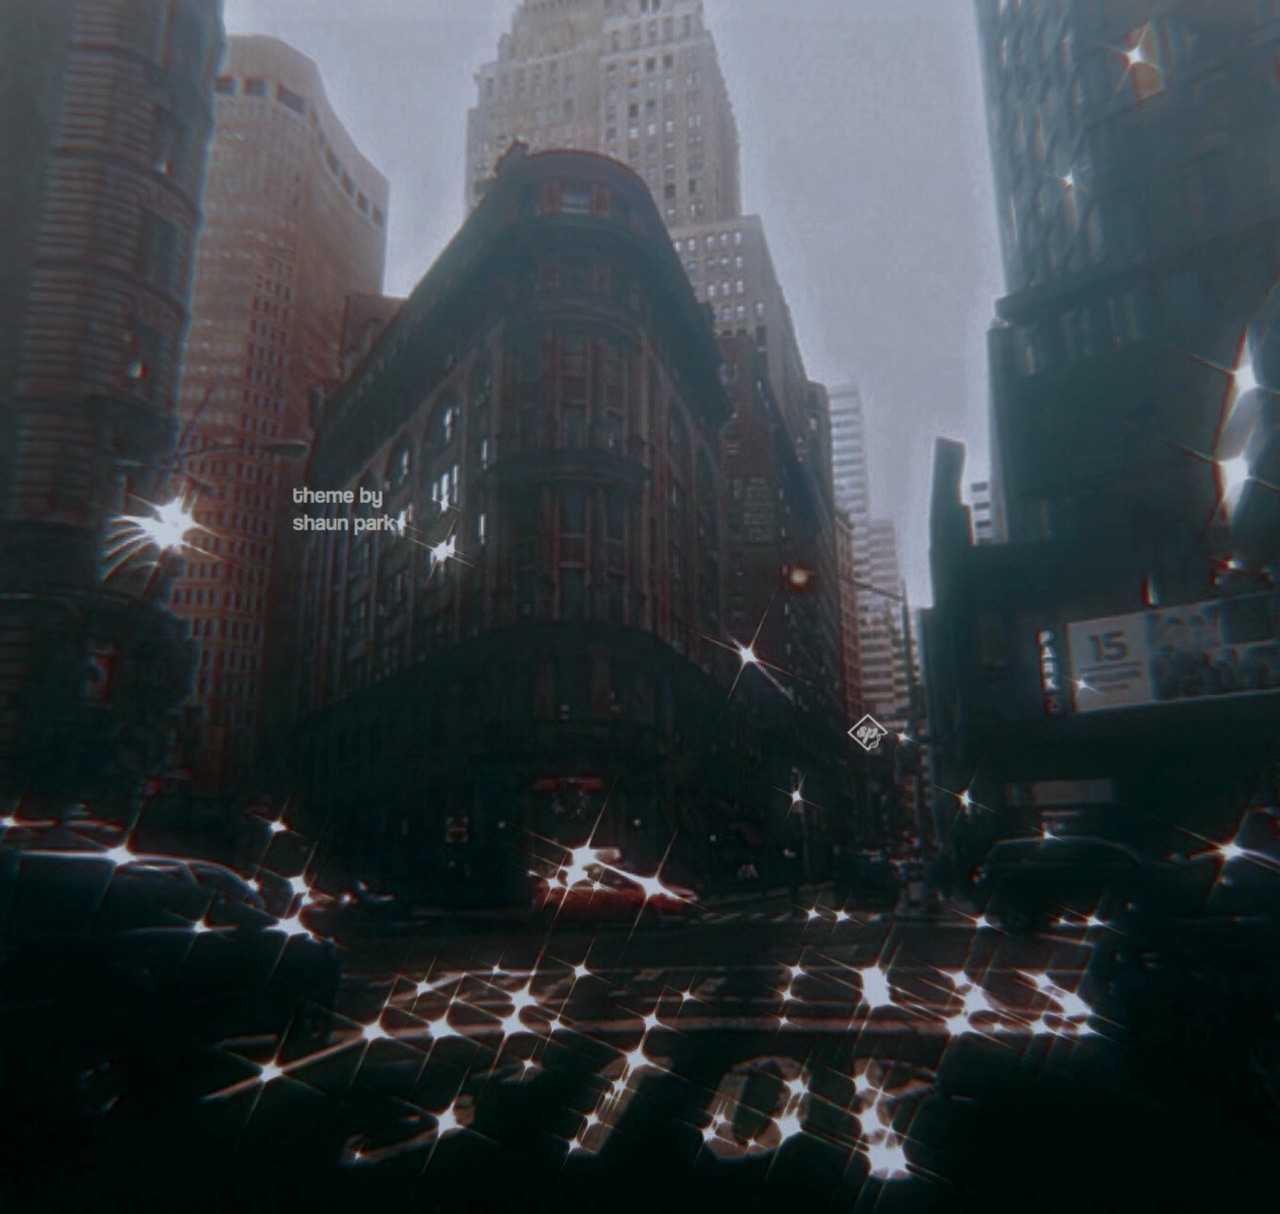 Vintage Nyc Aesthetic Background Theme By Shaunpxrk On Whi Please Credit Like If Using Do Not Copy Edit Repost Or Steal